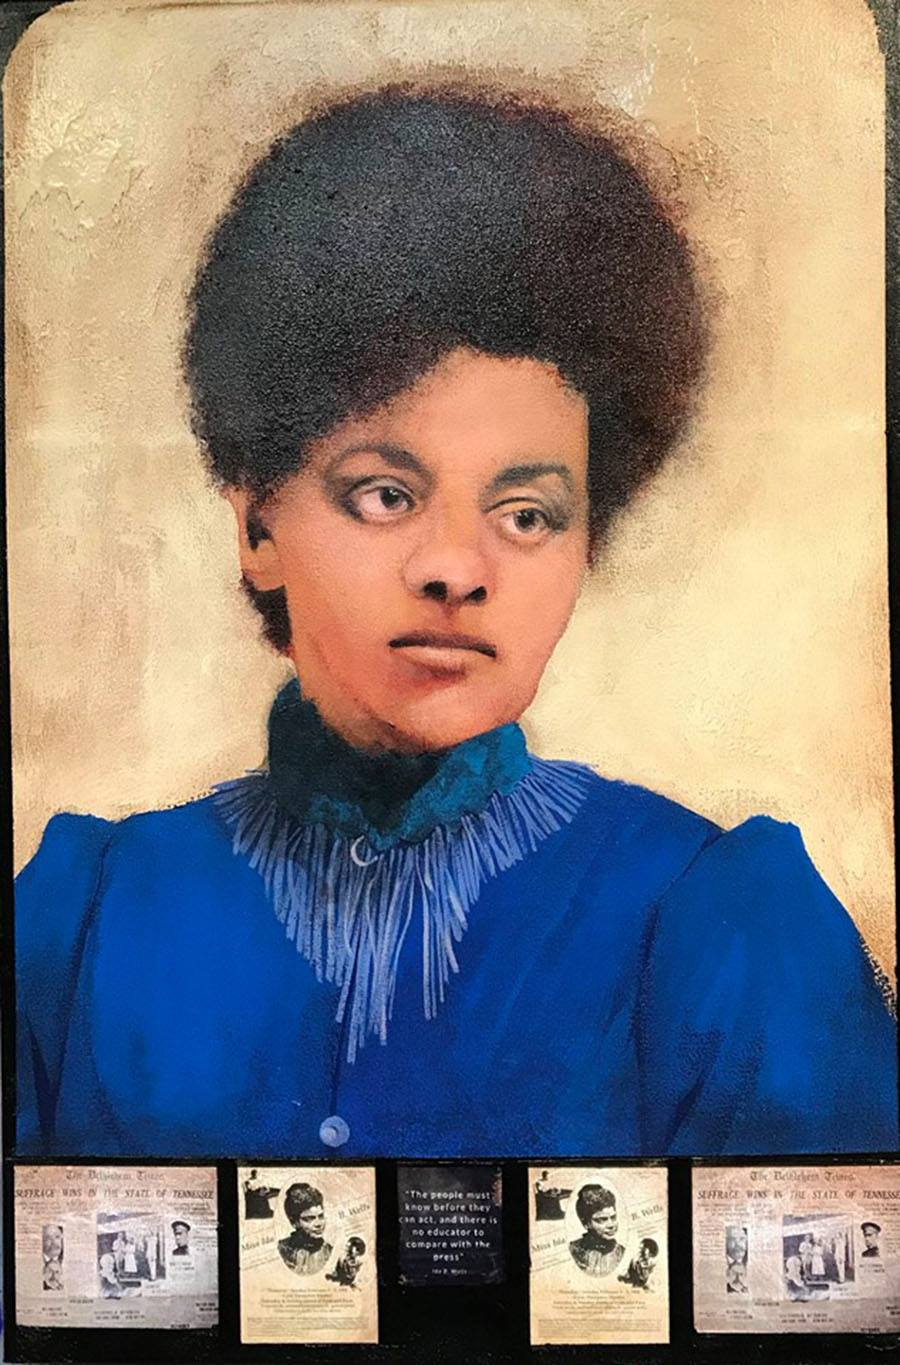 A portrait from the Battle for the Ballot exhibition at Artisan Studio 218, which focuses on Mary Kline Misol's battle to pass the 19th Amendment. The exhibition will open on Friday as a part of Spring Gallery Night.